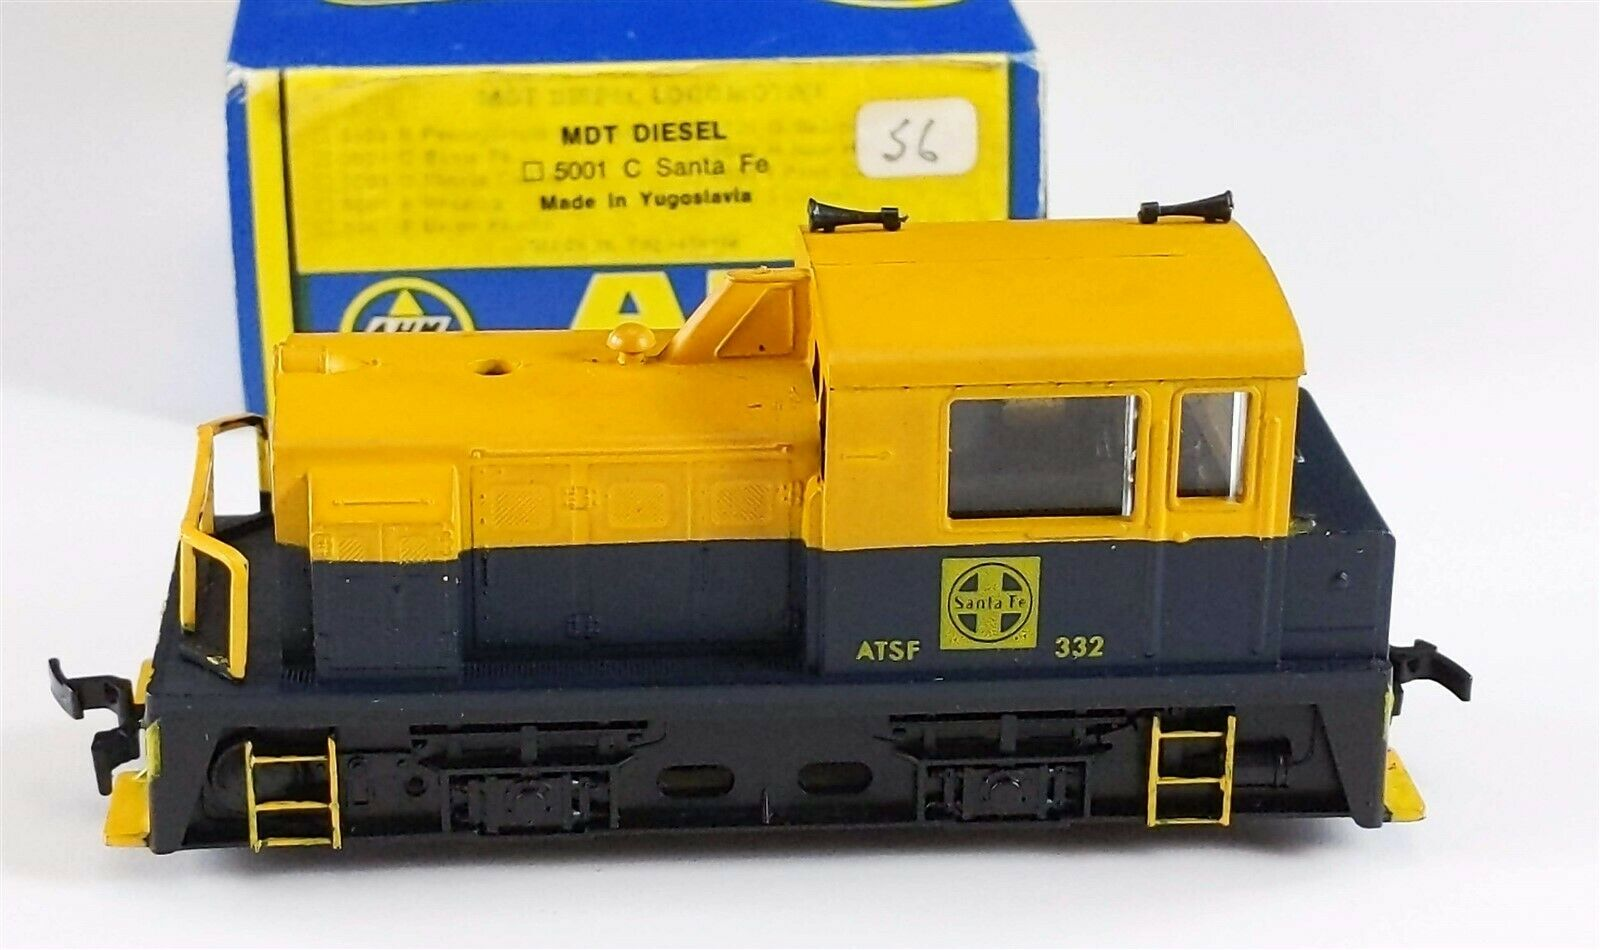 Ahm Rso 5001 C Santa Fe Plymouth Mdt Switcher Diesel Locomotive 332 Ho Scale For Sale Online